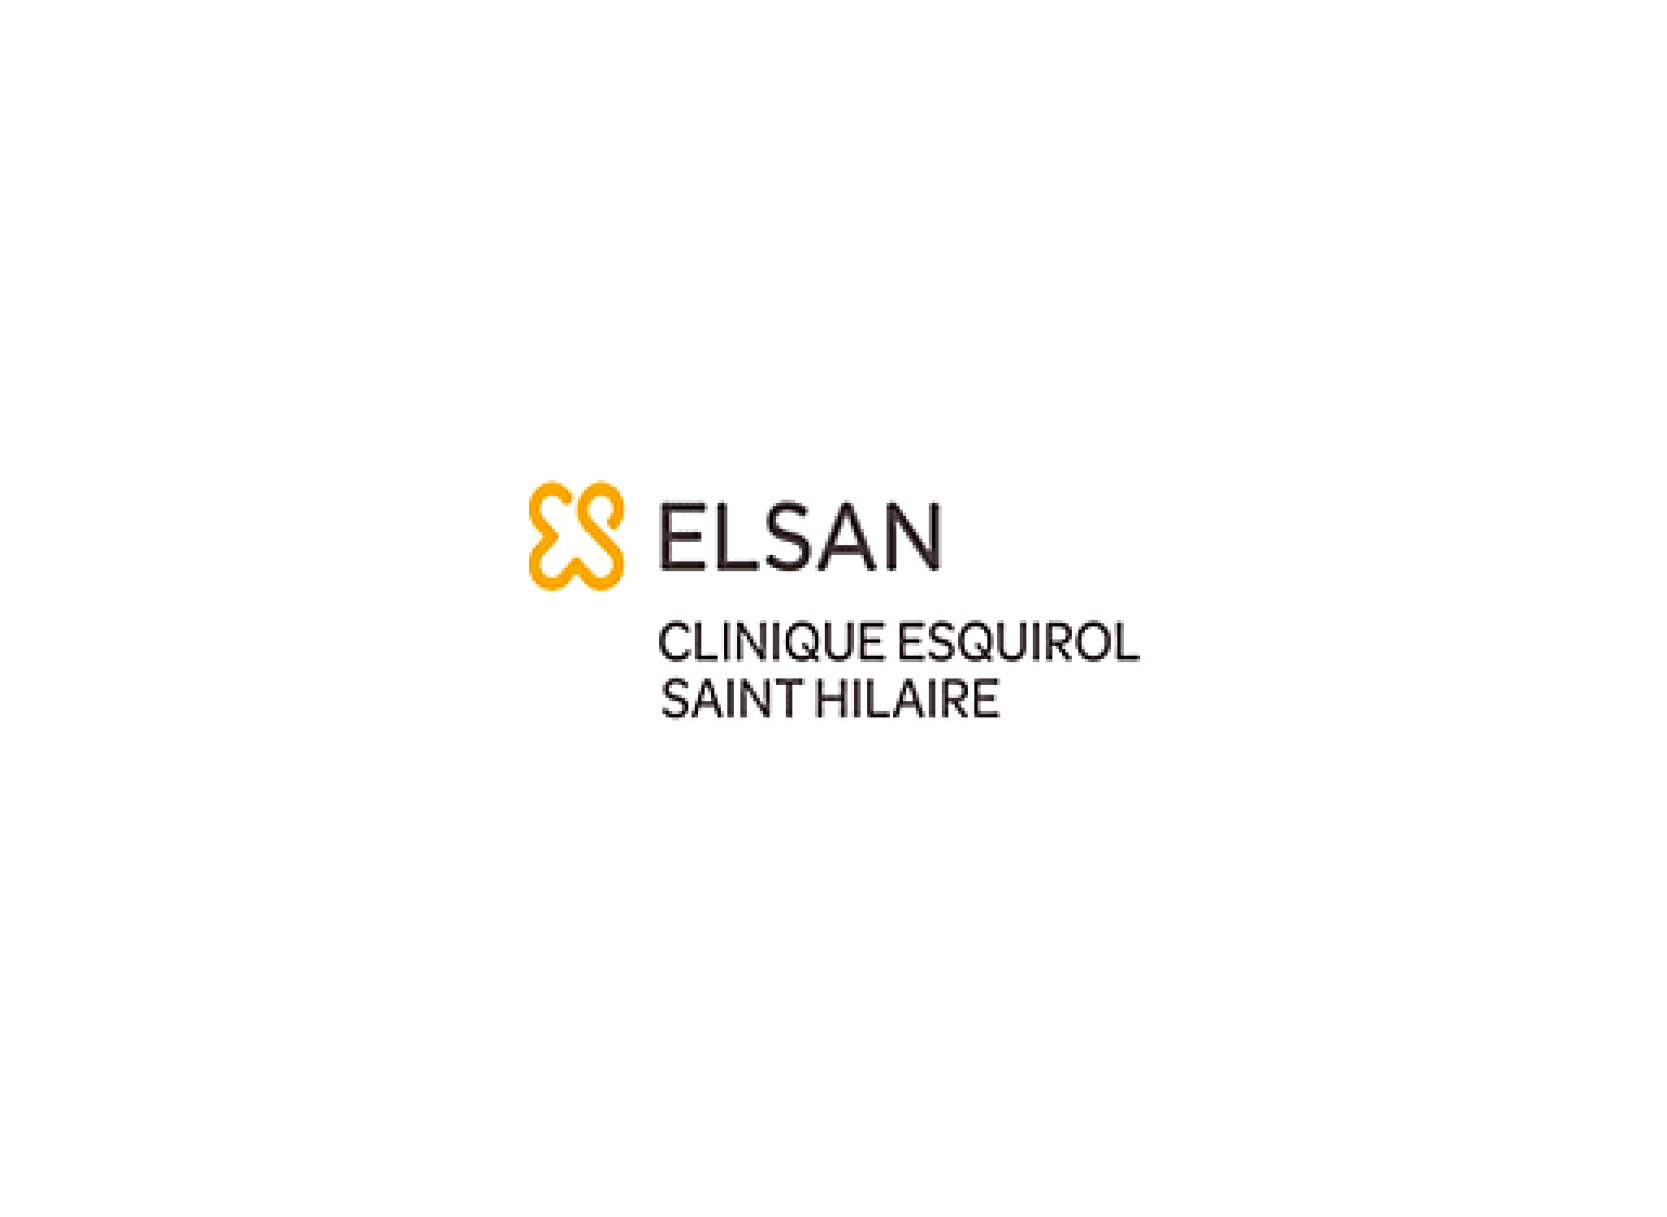 Logo Clinique Esquirol saint hilaire - ELSAN